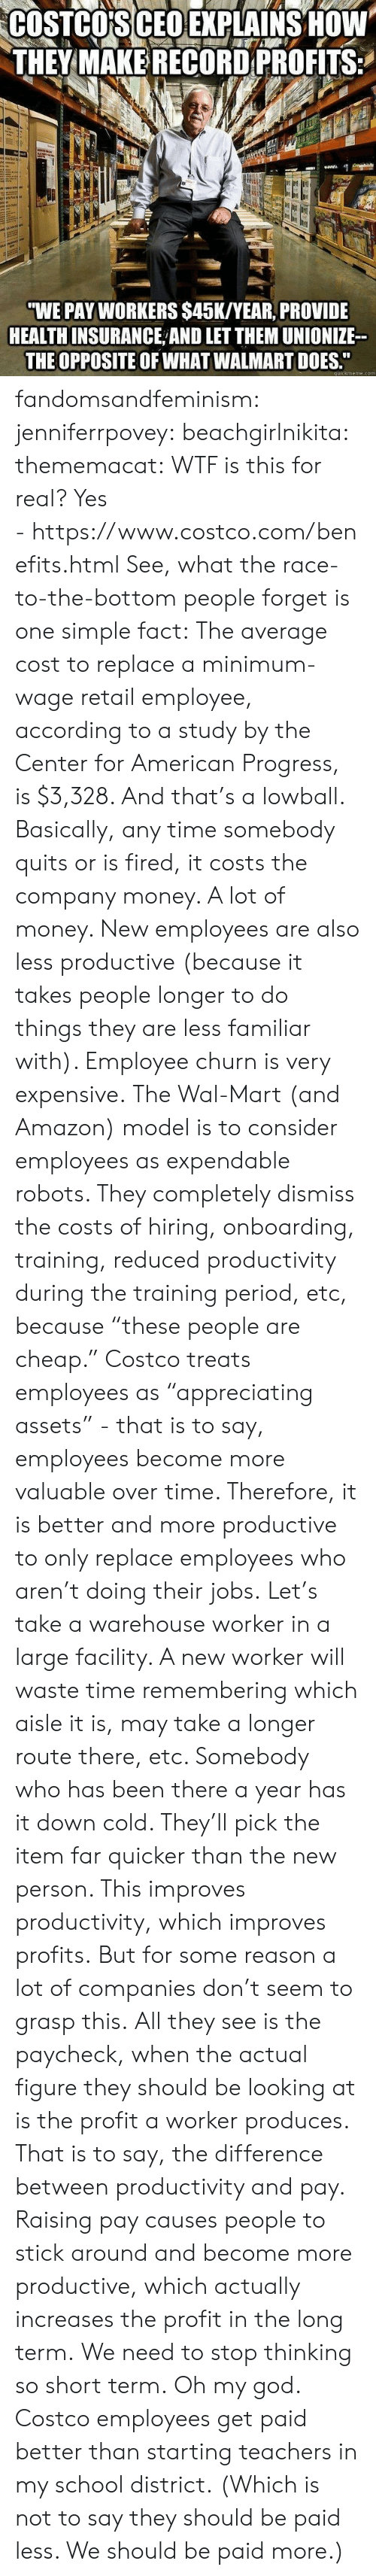 "Costco: COSTCO'S CEO EXPLAINS HOW  THEY MAKE RECORD PROFITS  ""WE PAY WORKERS $45K/YEAR, PROVIDE  HEALTH INSURANCE AND LET THEM UNIONIZE  THE OPPOSITE OF WHAT WALMART DOES.""  quickmeme.com fandomsandfeminism:  jenniferrpovey:  beachgirlnikita:  thememacat: WTF is this for real? Yes - https://www.costco.com/benefits.html  See, what the race-to-the-bottom people forget is one simple fact: The average cost to replace a minimum-wage retail employee, according to a study by the Center for American Progress, is $3,328. And that's a lowball. Basically, any time somebody quits or is fired, it costs the company money. A lot of money. New employees are also less productive (because it takes people longer to do things they are less familiar with). Employee churn is very expensive. The Wal-Mart (and Amazon) model is to consider employees as expendable robots. They completely dismiss the costs of hiring, onboarding, training, reduced productivity during the training period, etc, because ""these people are cheap."" Costco treats employees as ""appreciating assets"" - that is to say, employees become more valuable over time. Therefore, it is better and more productive to only replace employees who aren't doing their jobs. Let's take a warehouse worker in a large facility. A new worker will waste time remembering which aisle it is, may take a longer route there, etc. Somebody who has been there a year has it down cold. They'll pick the item far quicker than the new person. This improves productivity, which improves profits. But for some reason a lot of companies don't seem to grasp this. All they see is the paycheck, when the actual figure they should be looking at is the profit a worker produces. That is to say, the difference between productivity and pay. Raising pay causes people to stick around and become more productive, which actually increases the profit in the long term. We need to stop thinking so short term.   Oh my god. Costco employees get paid better than starting teachers in my school district.  (Which is not to say they should be paid less. We should be paid more.)"